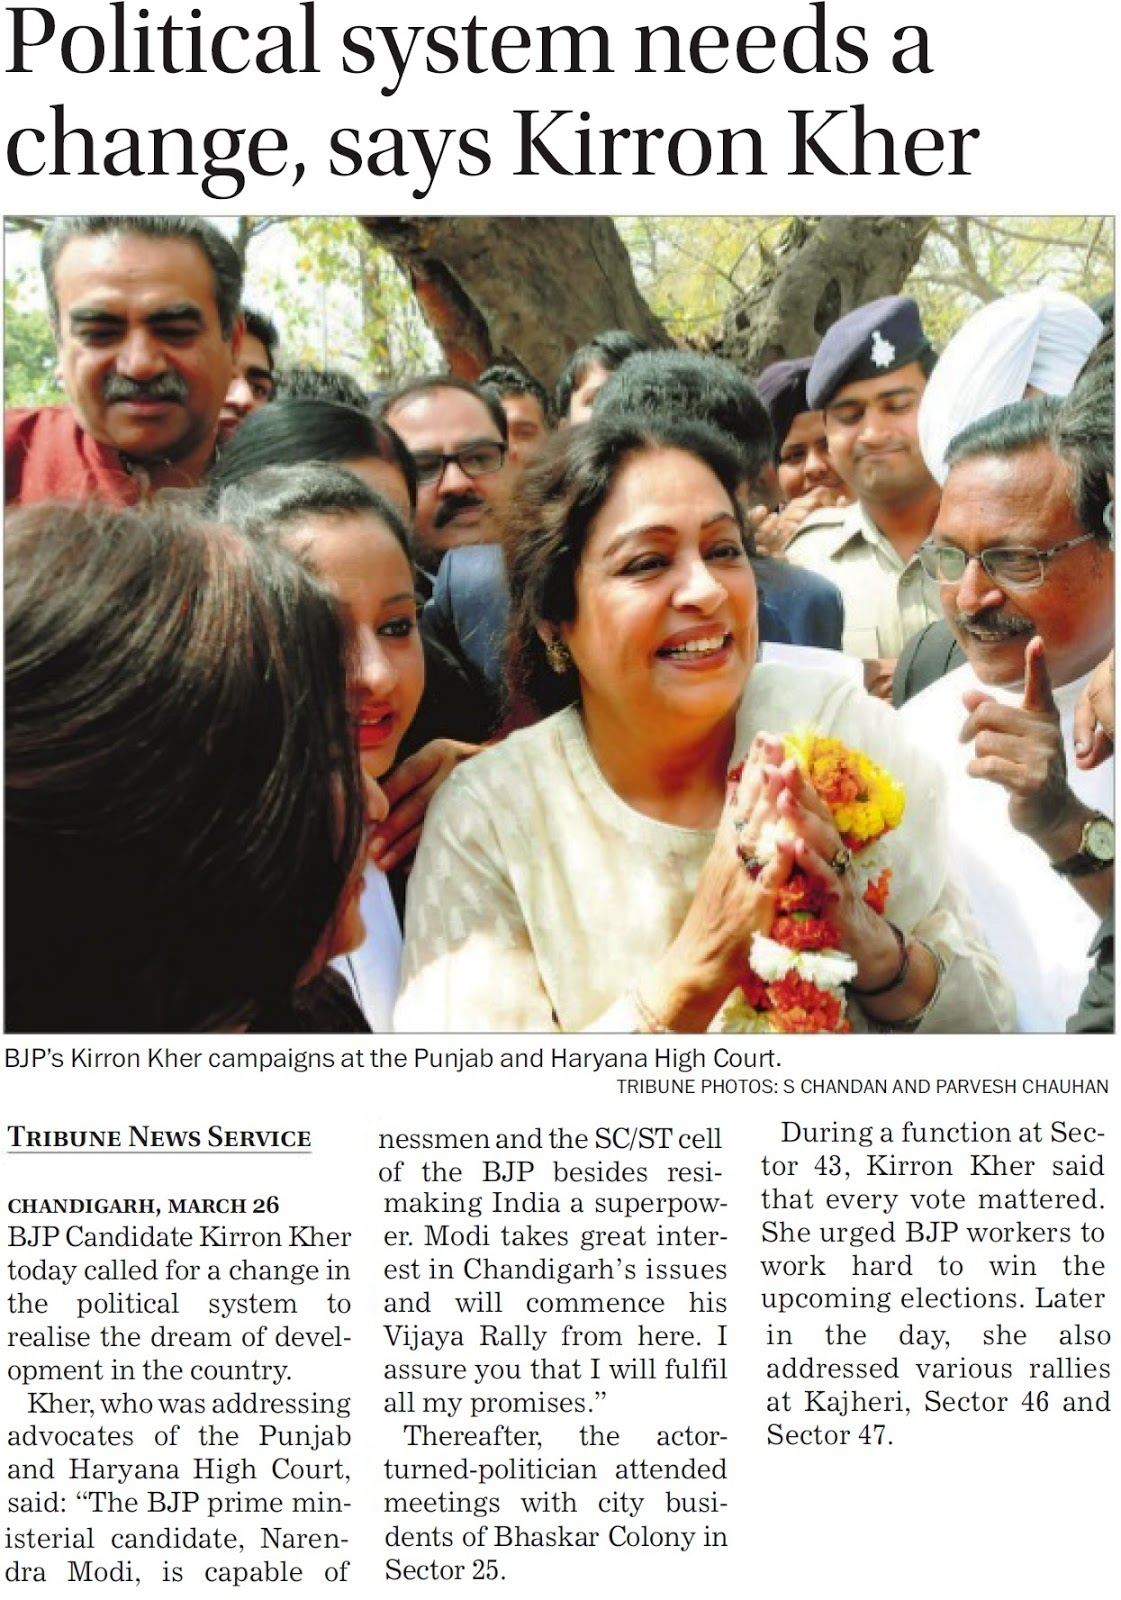 BJP's Kirron Kher campaigns at the Punjab & Haryana High Court. Alonwith Ex-MP Satya Pal Jain & other BJP leaders